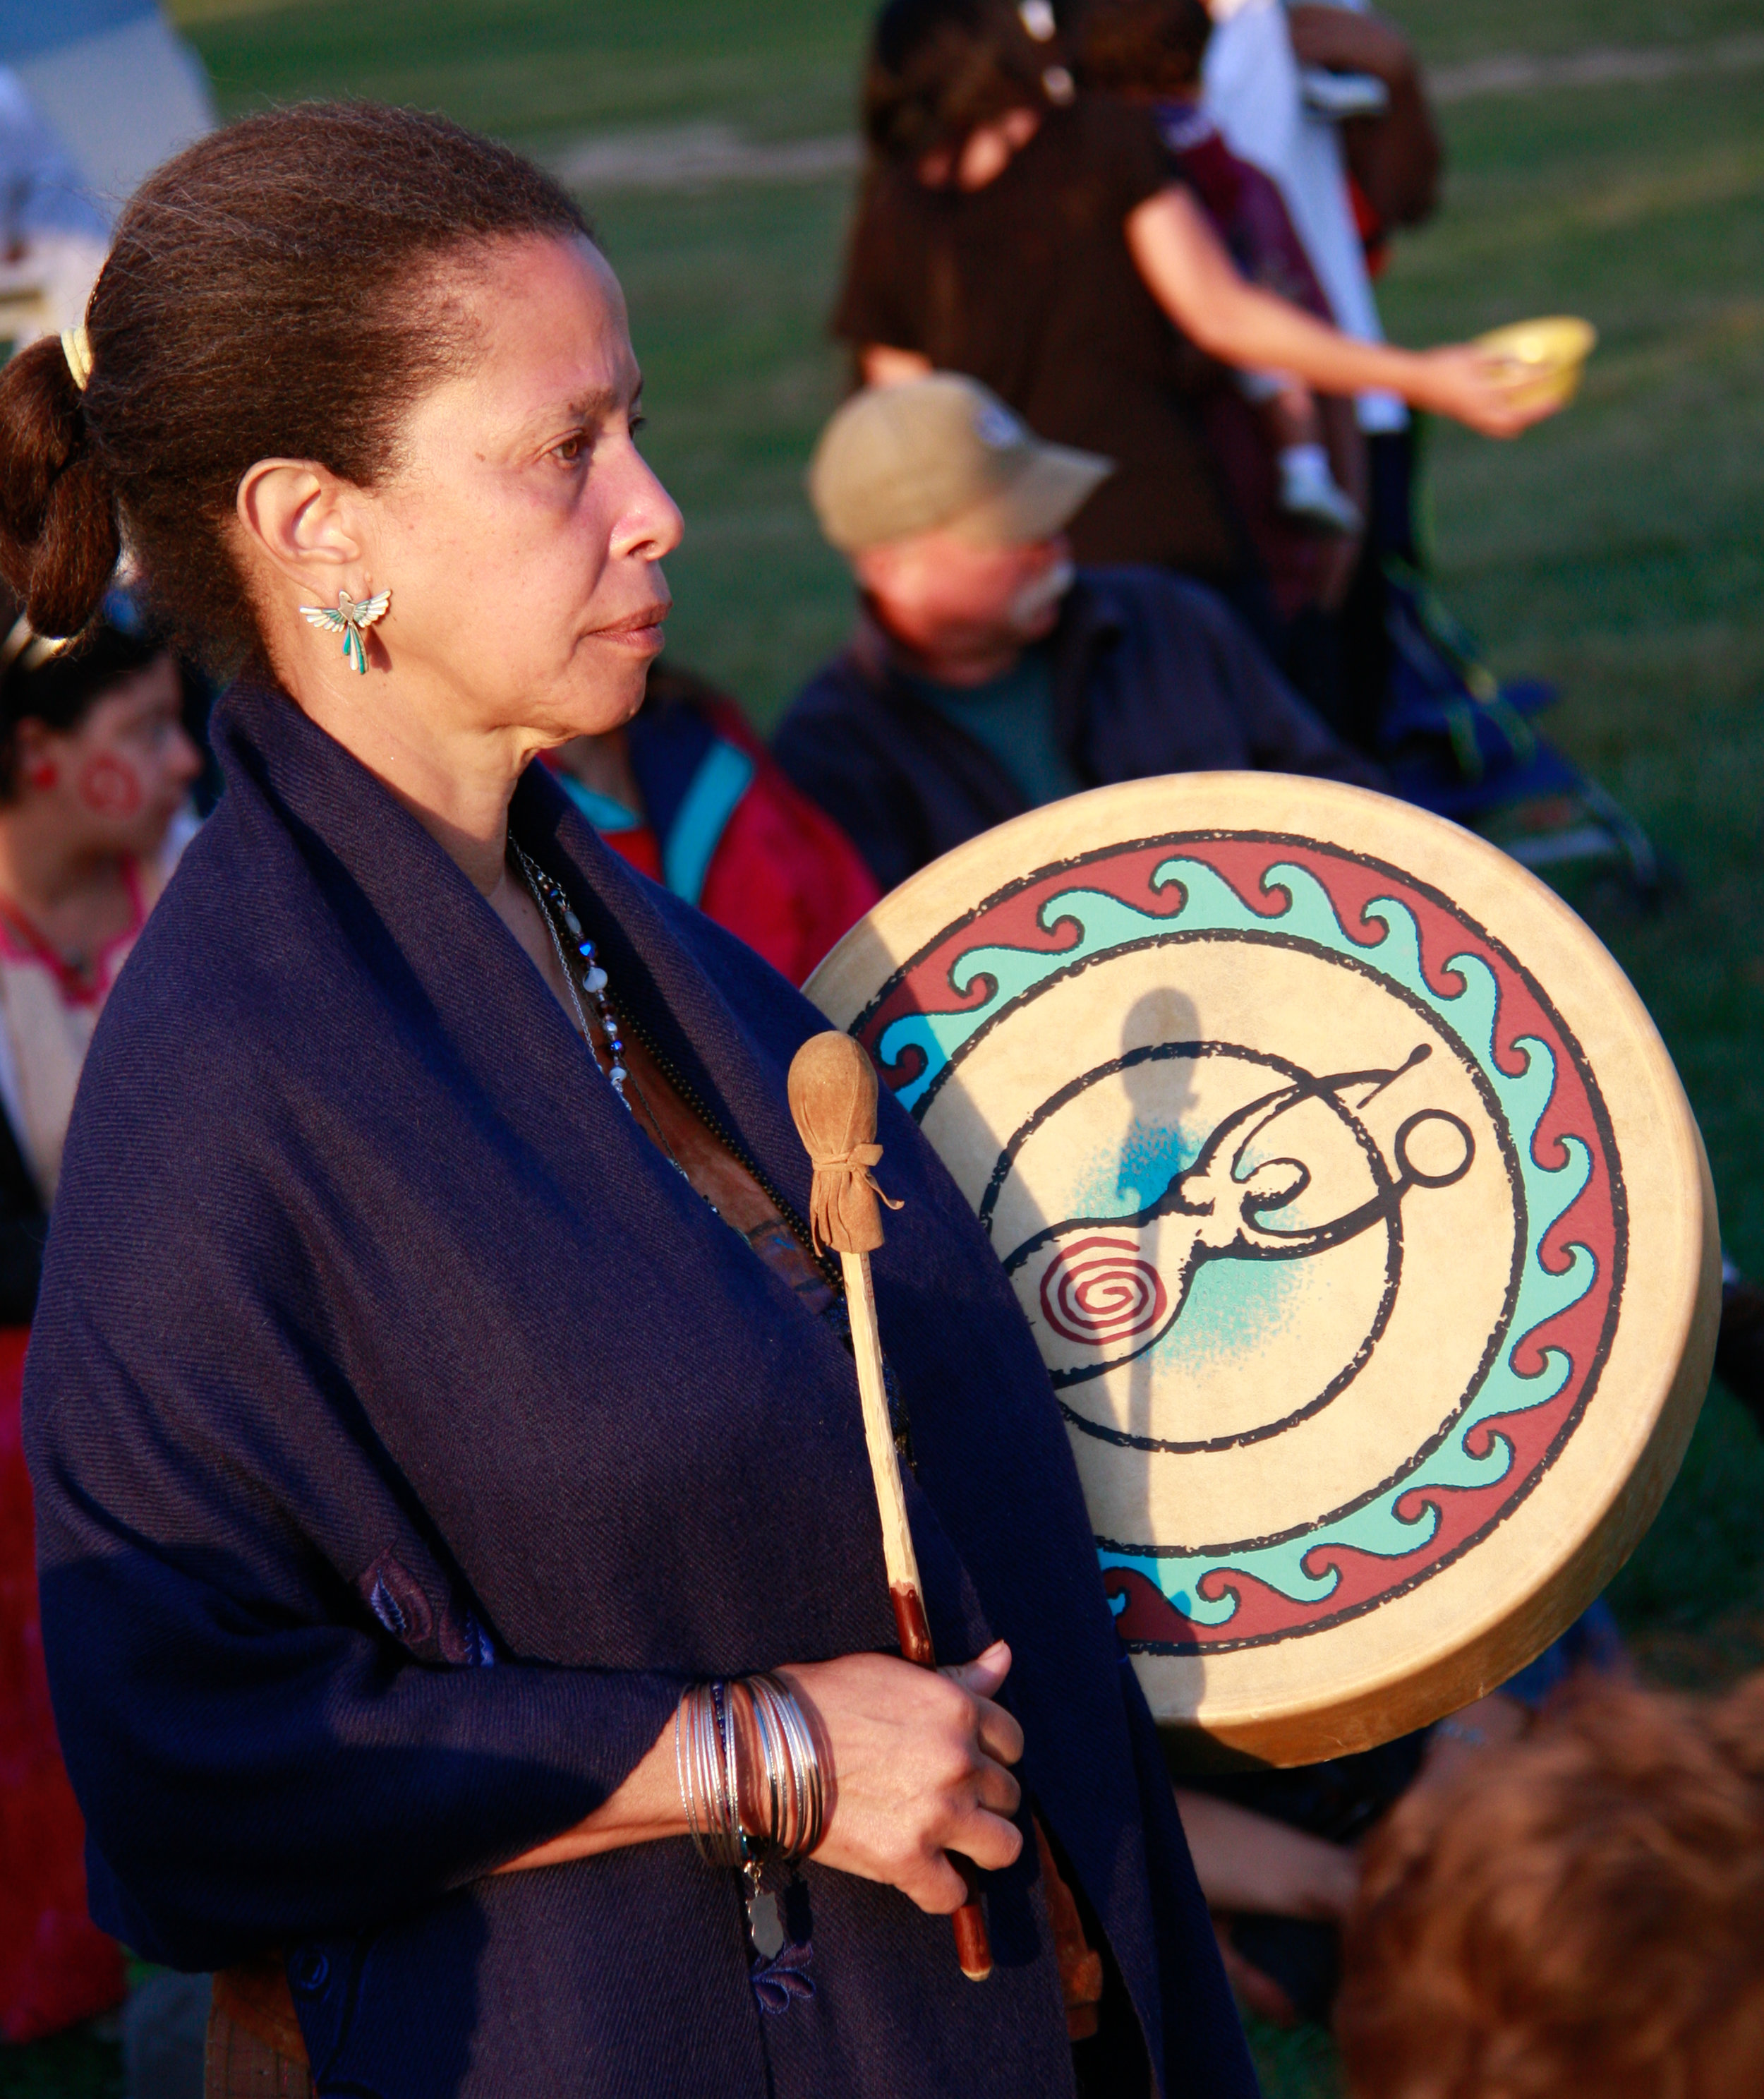 Rabiah Nur - Spring of LightRabiah is an energy healer whose Indigenous roots and medicine connect her with the Earth and the elements. A daughter of the Divine Mother, she uses dance, singing and the drum to raise the vibrations of people and nature.